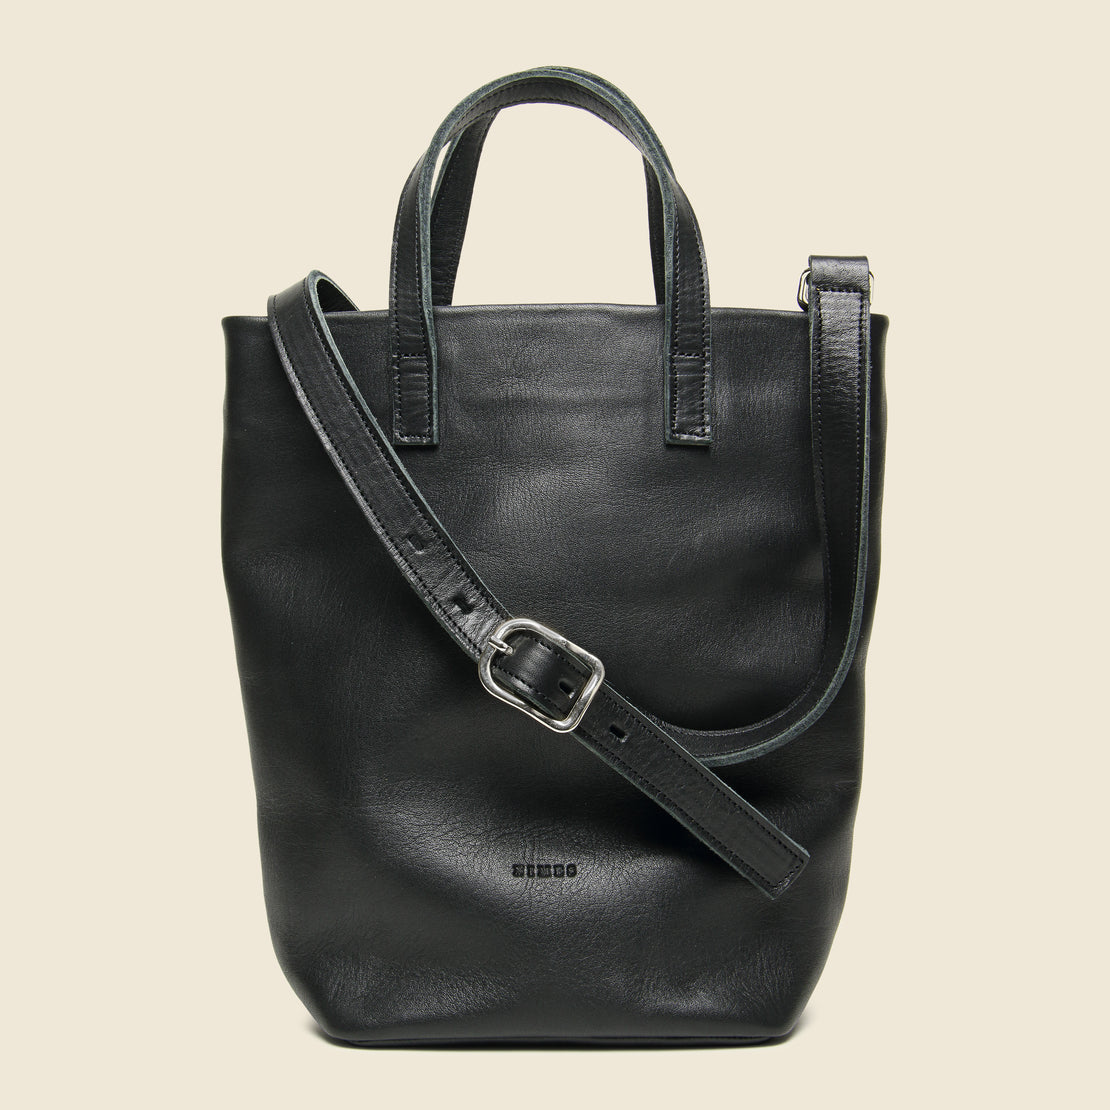 Nimes Small Barracas Leather Tote Bag - Black